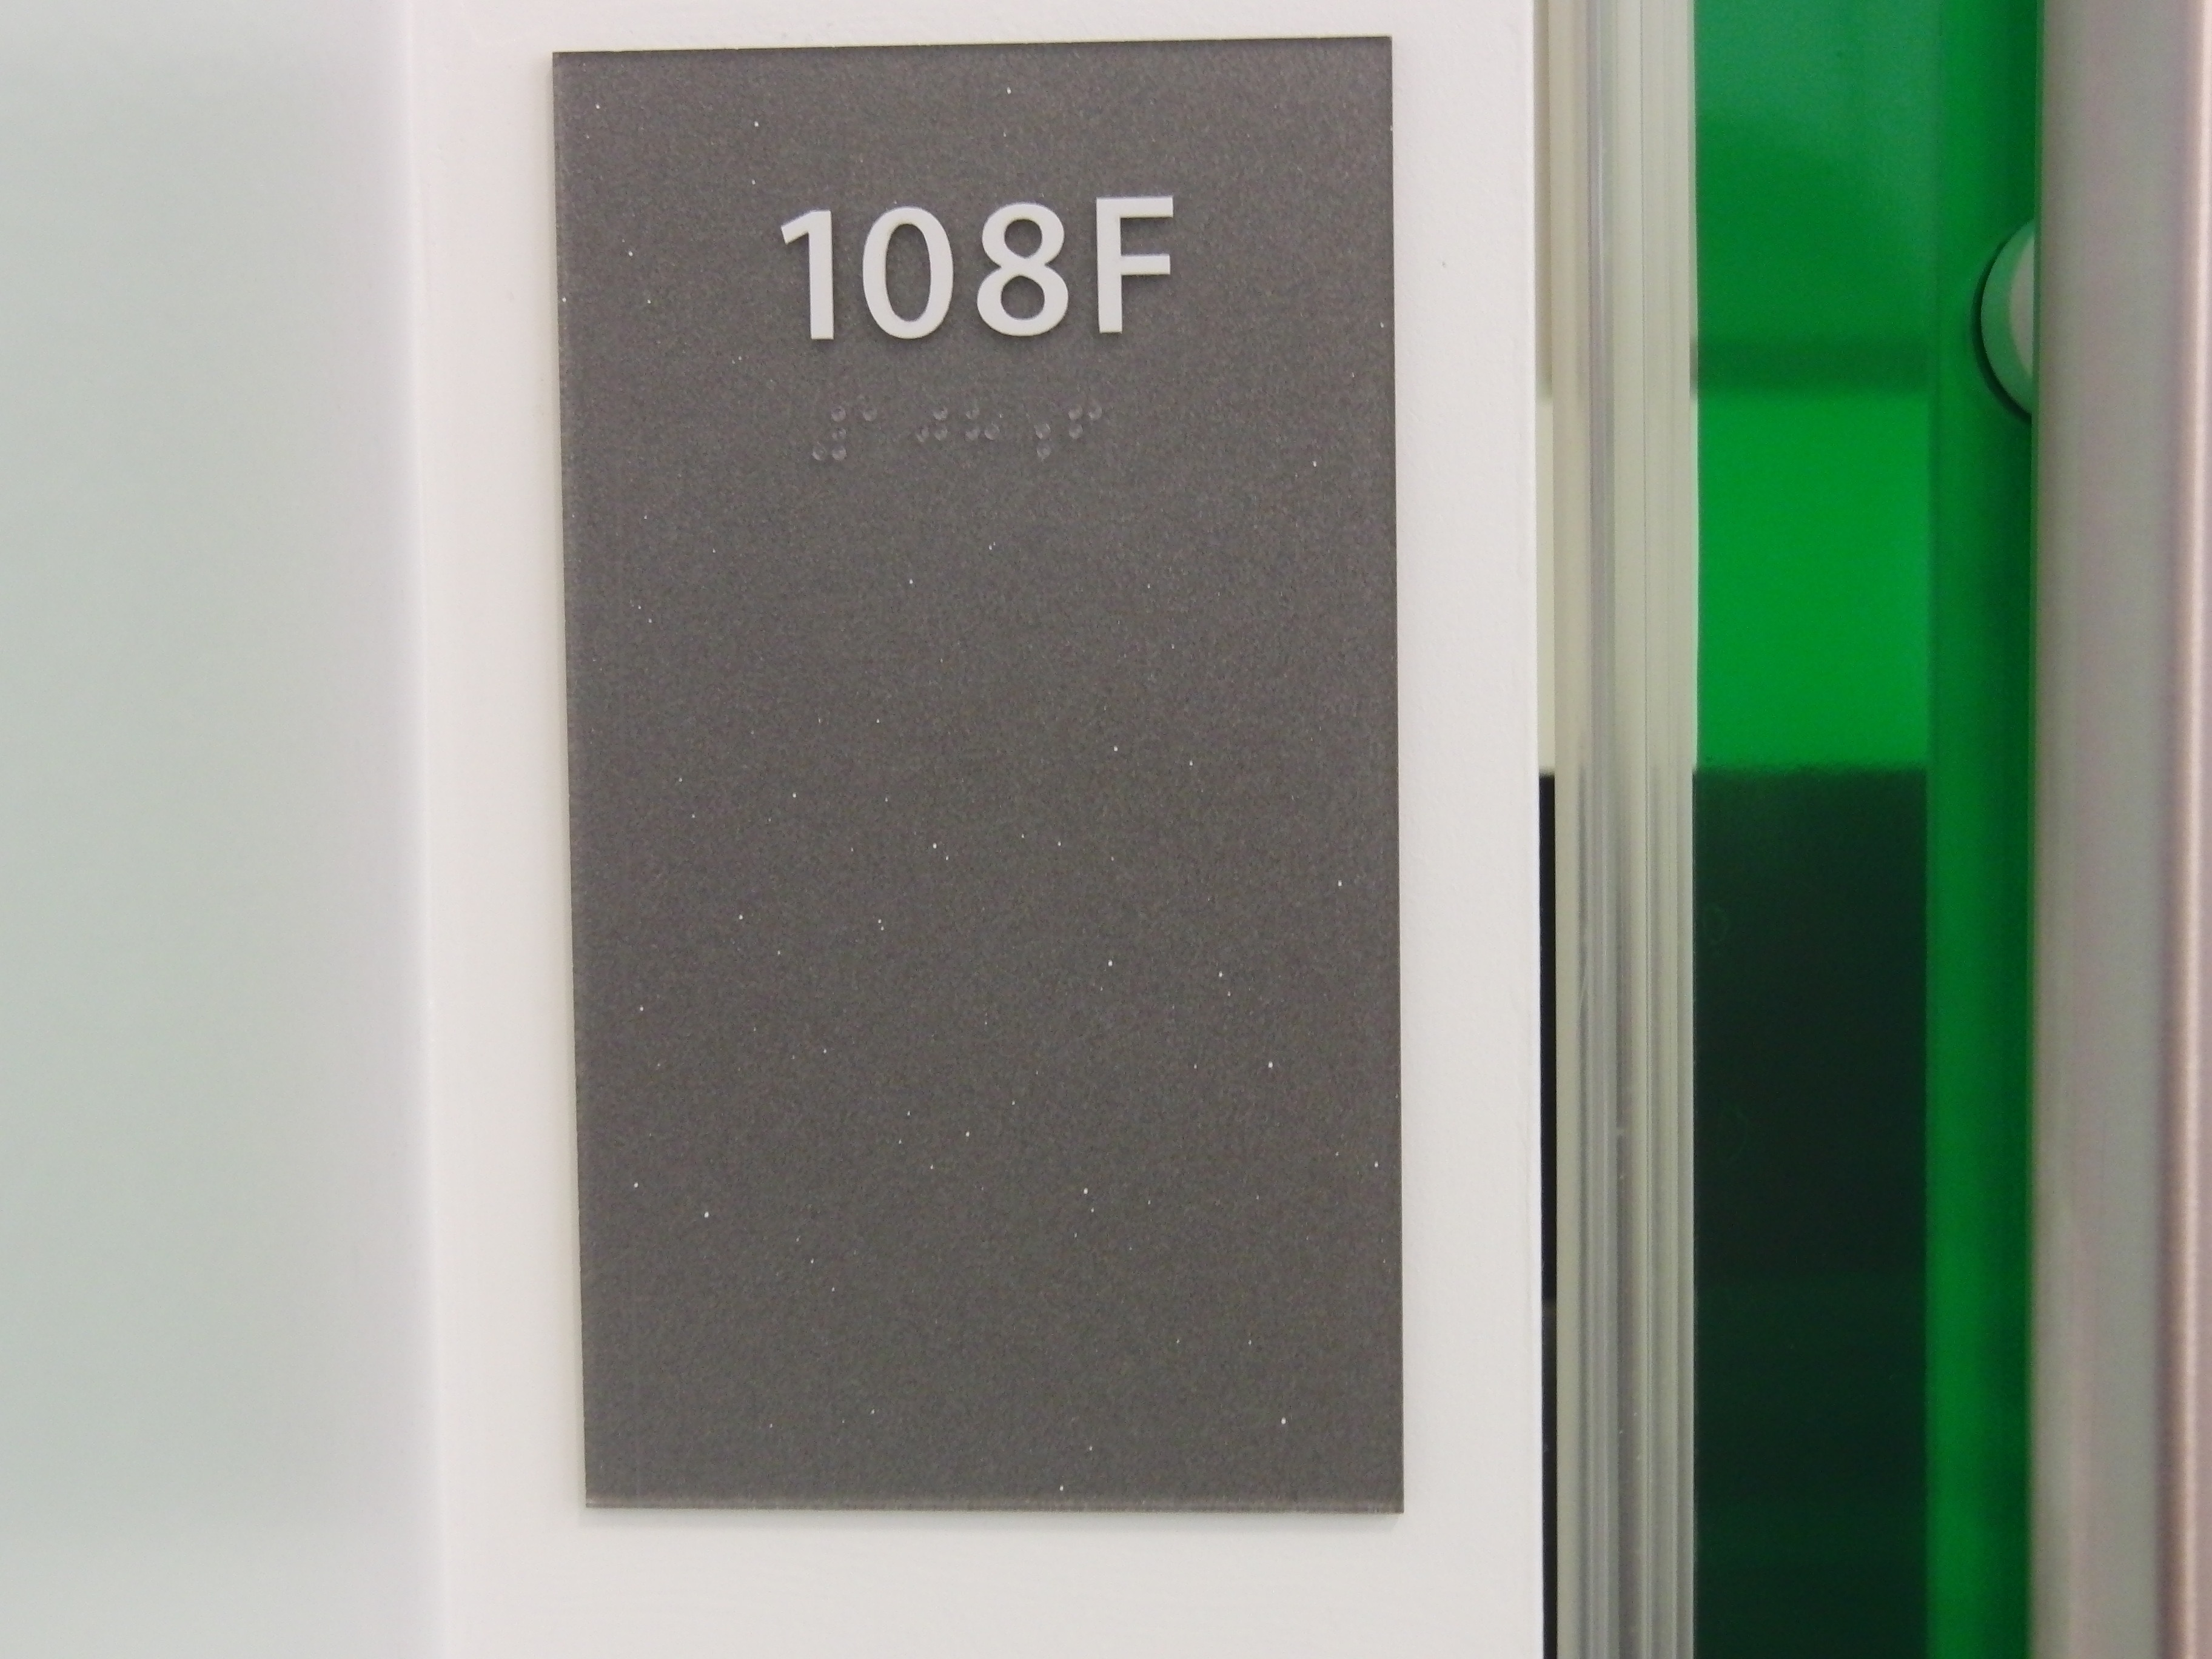 Photo of the Long 108 F room number